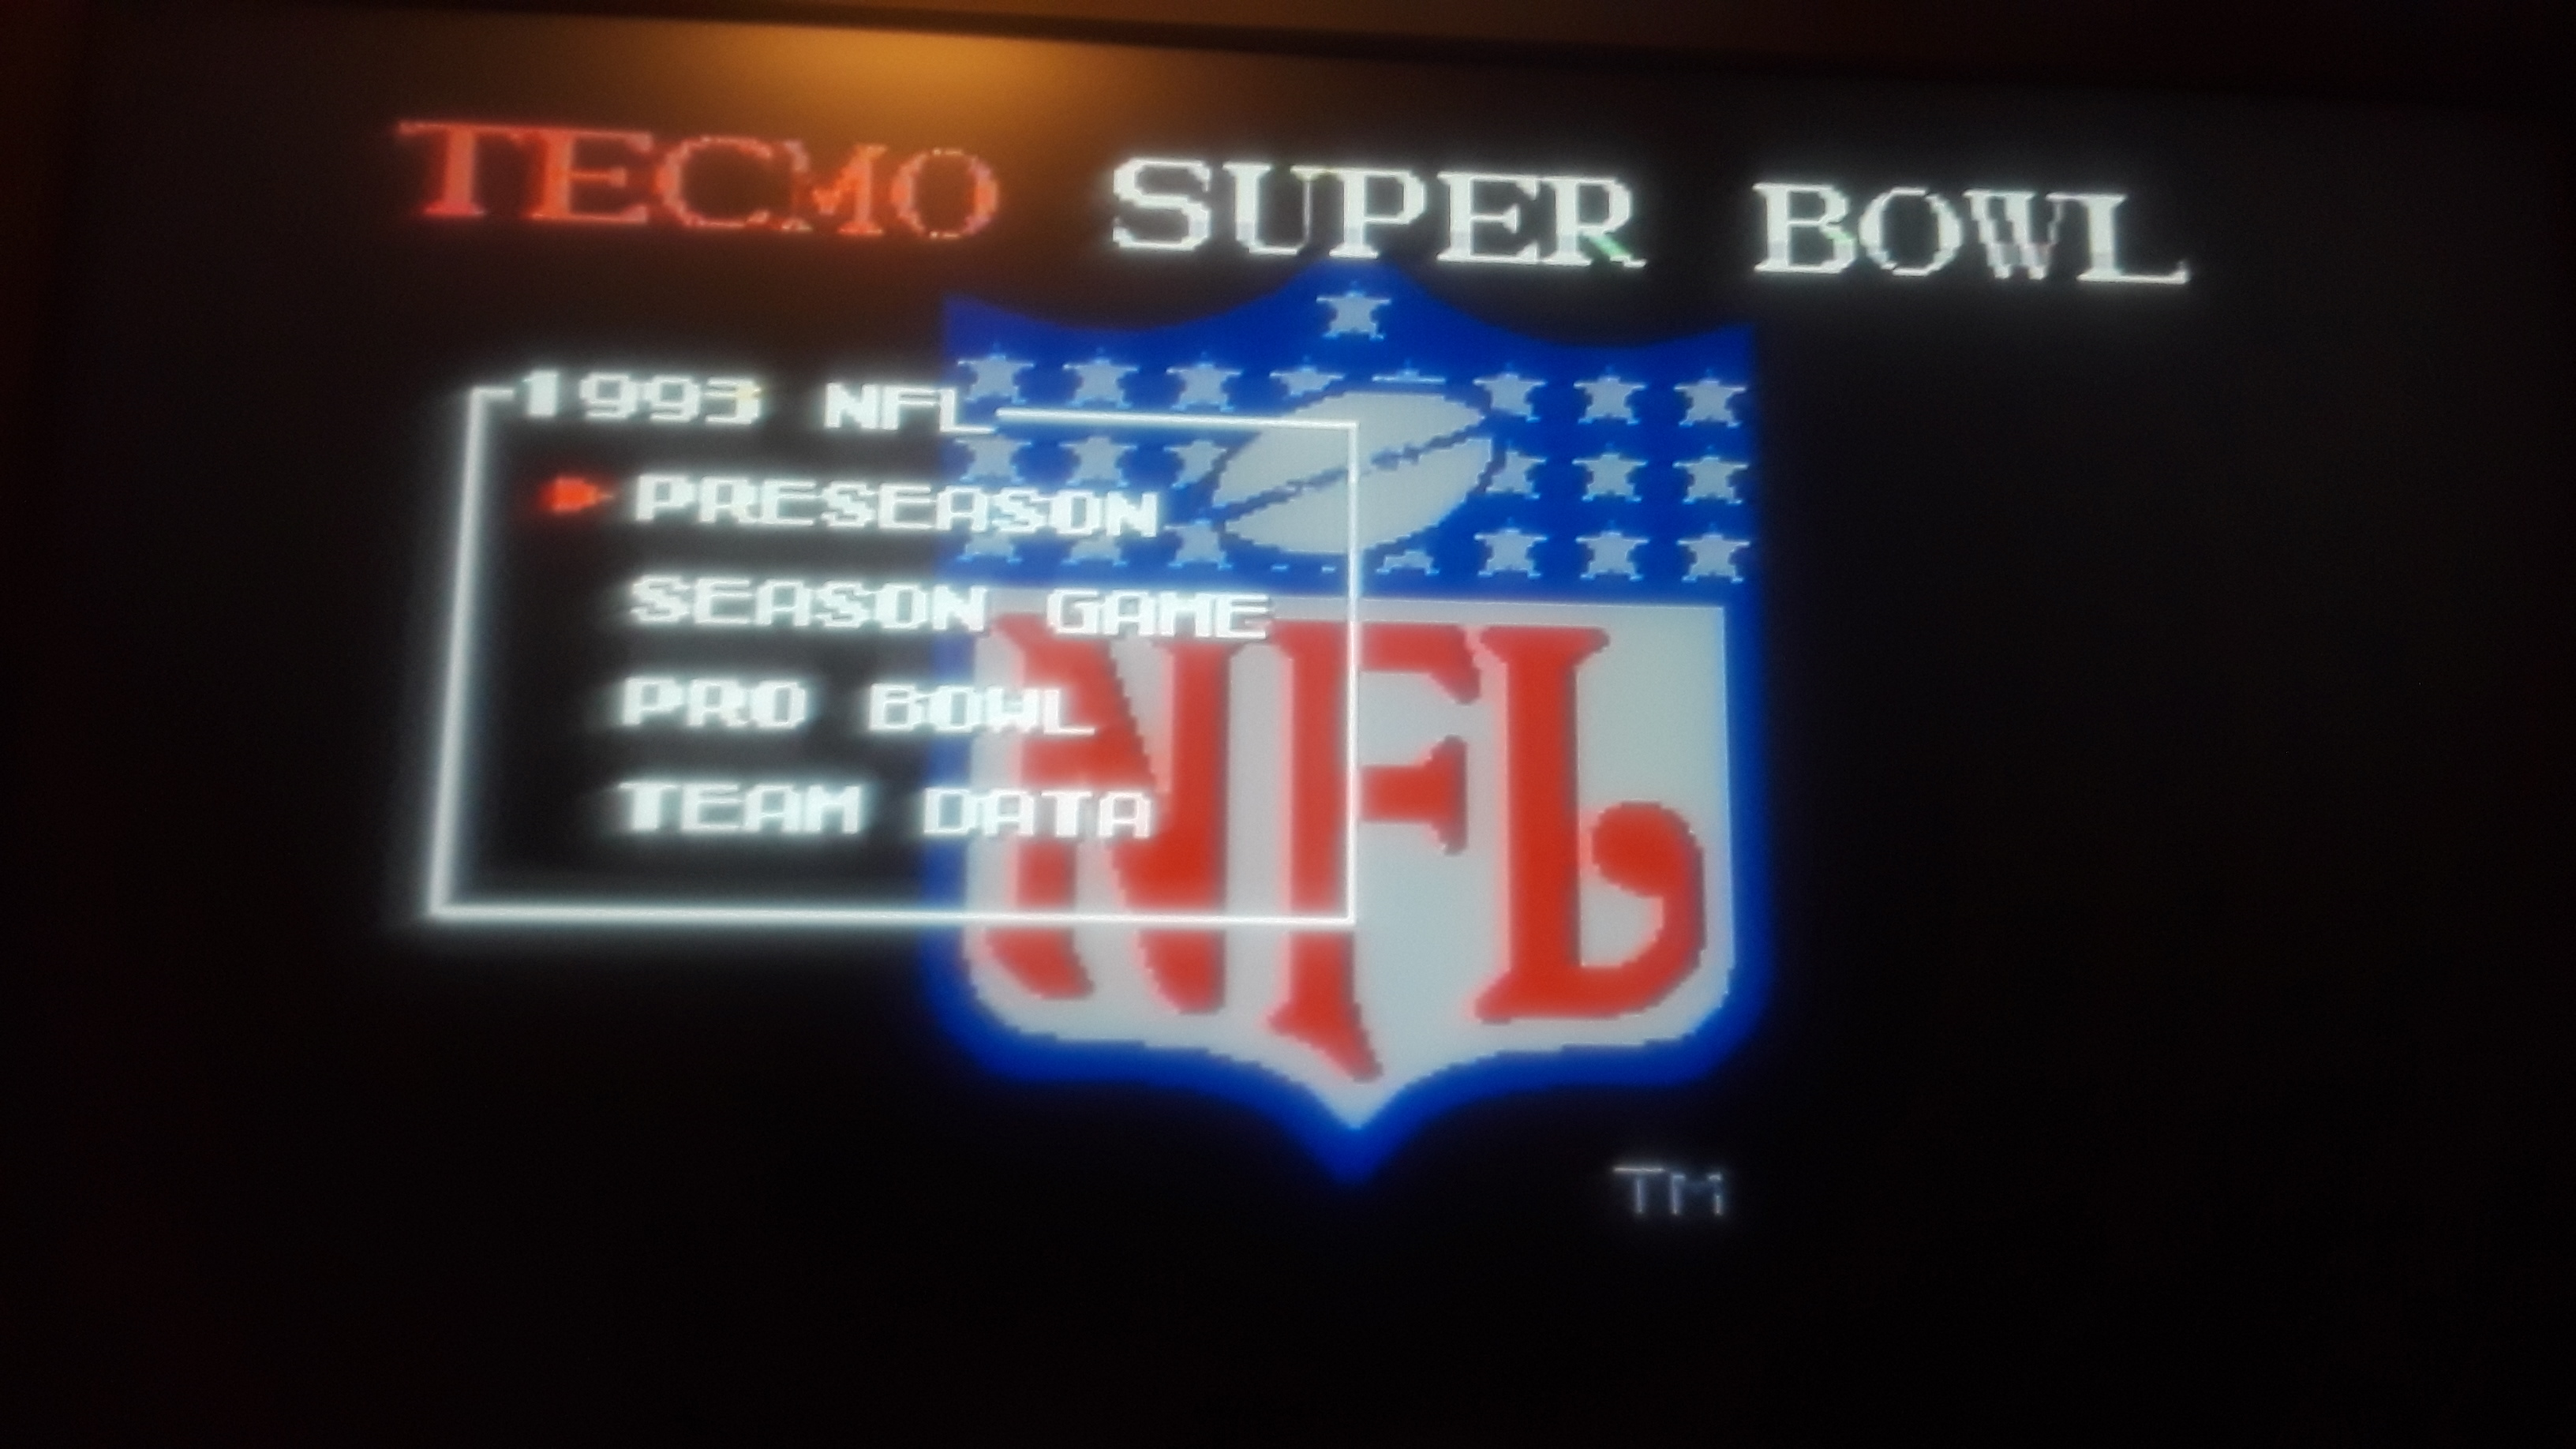 Tecmo Super Bowl [Most Rushing Yards] [Preseason] 543 points